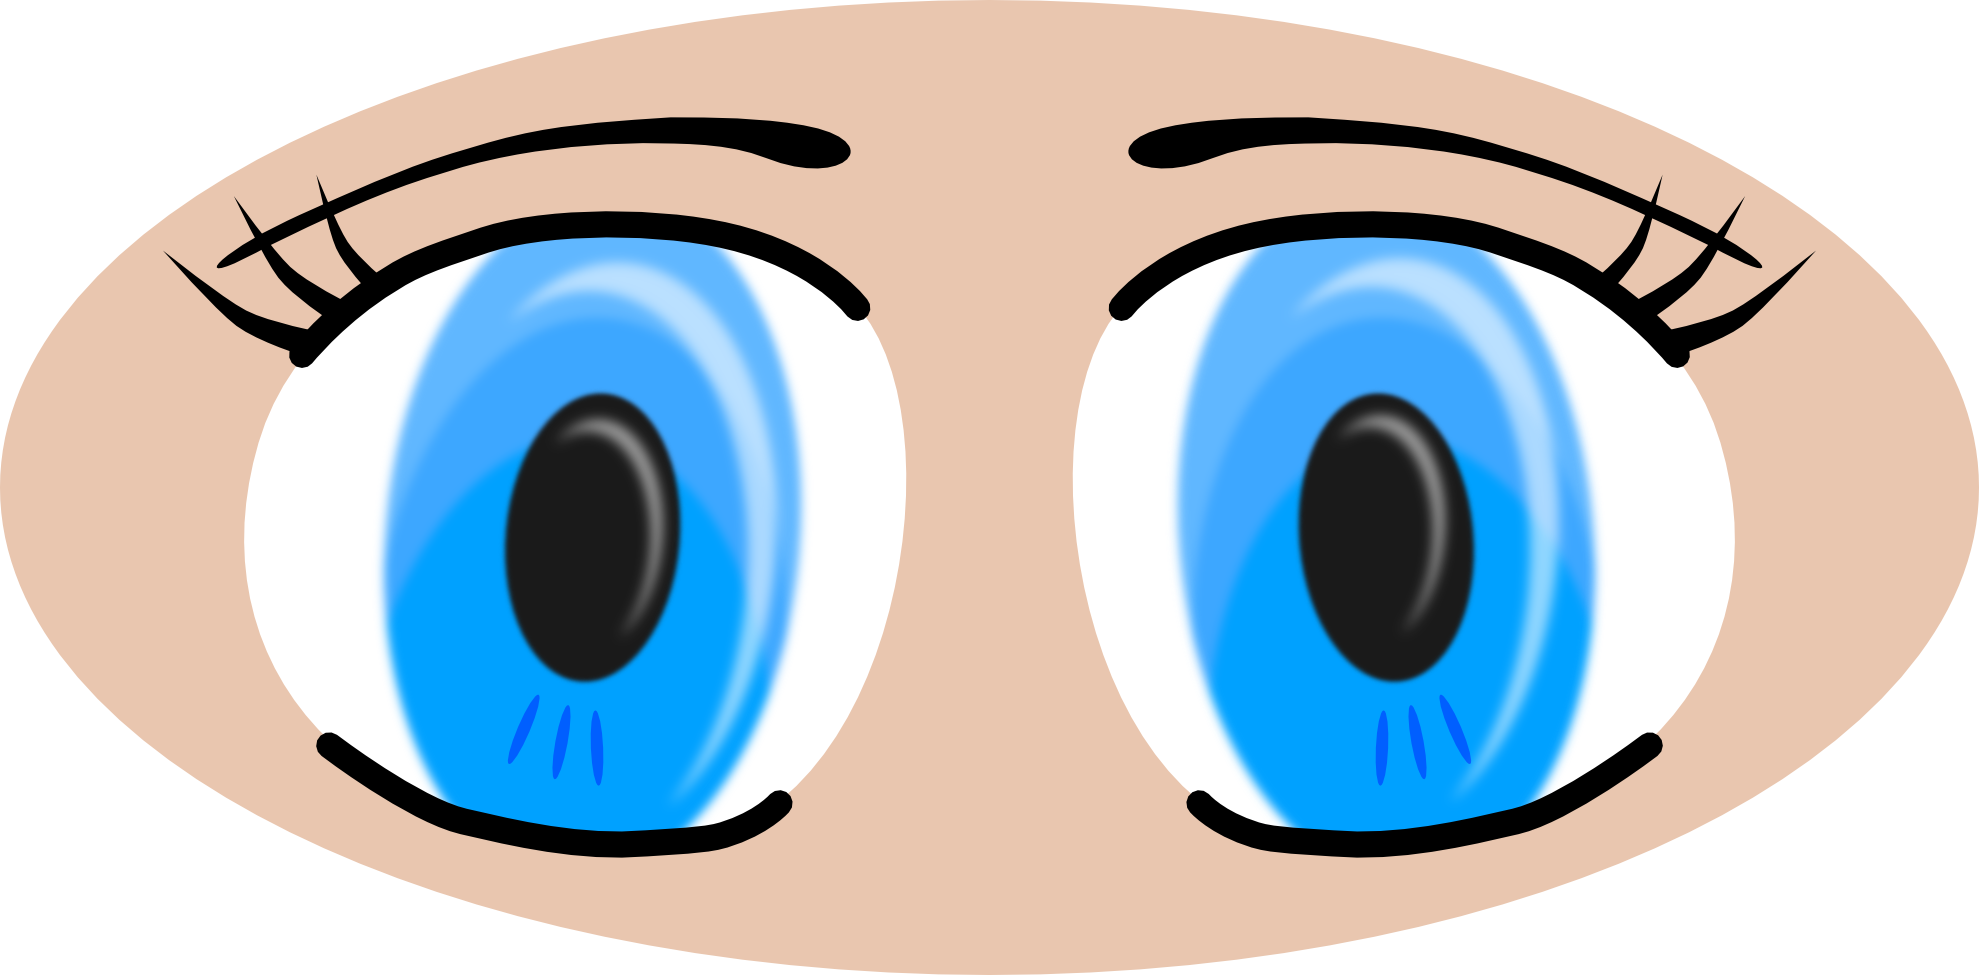 Eyeball eye clip art clipart cliparts for you image.